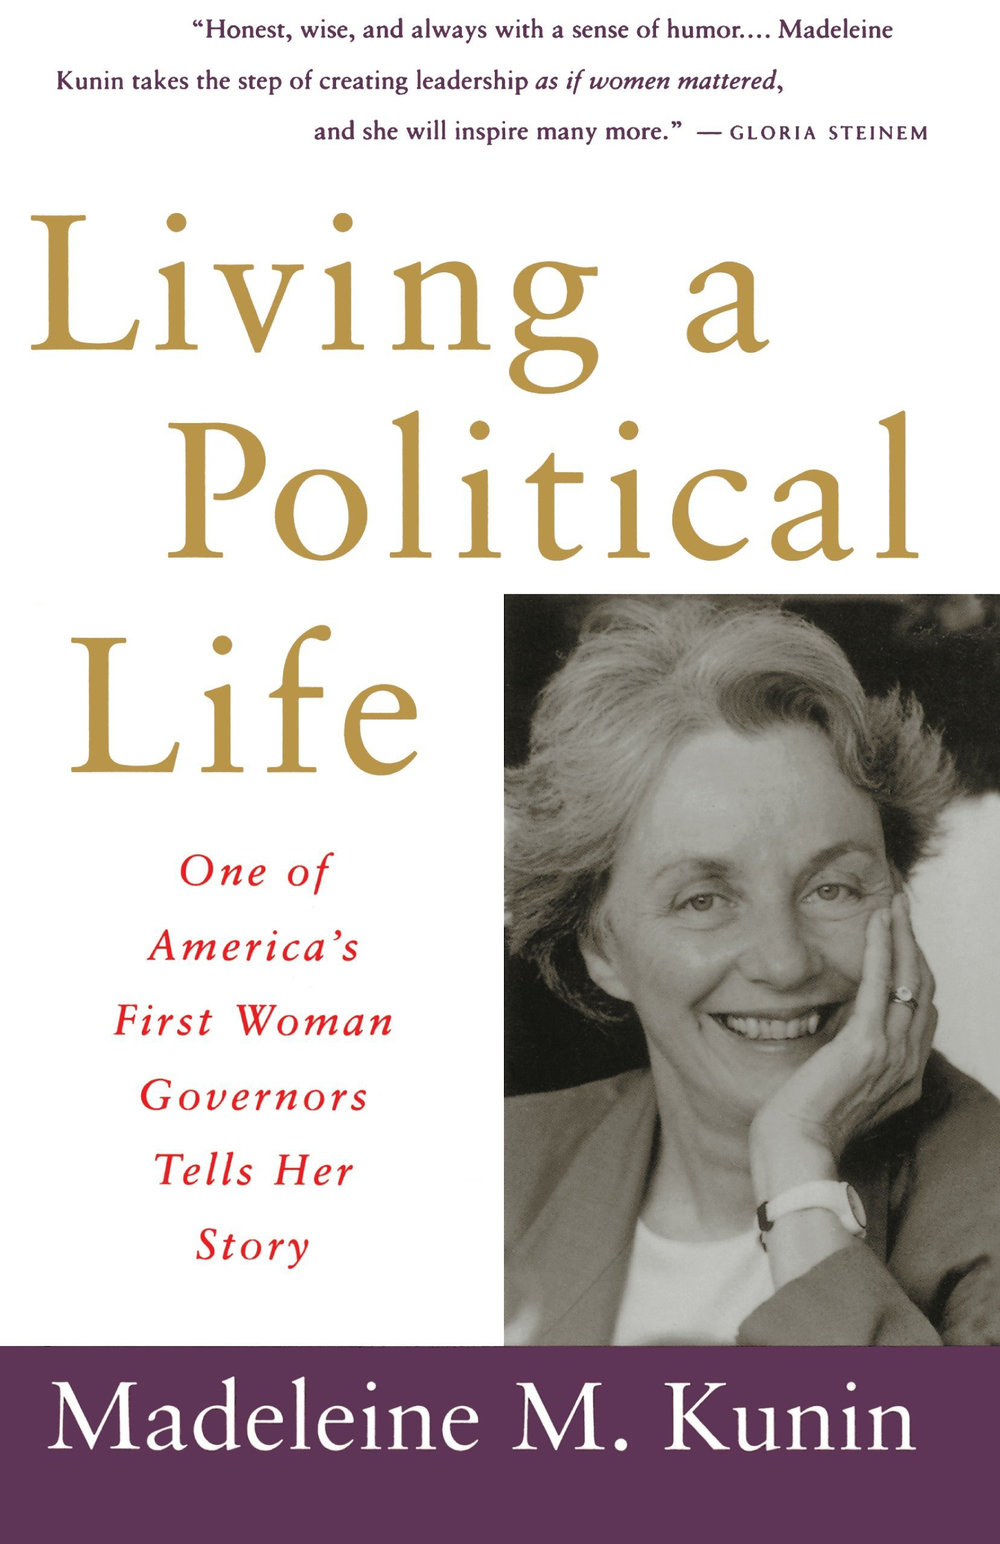 "Living a political life - One of America's First Woman Governors Tells Her Story""Madeleine Kunin speaks for all women who try to do it all. Her story is our story. She does it well, both the living and the telling."" —Newsweek"